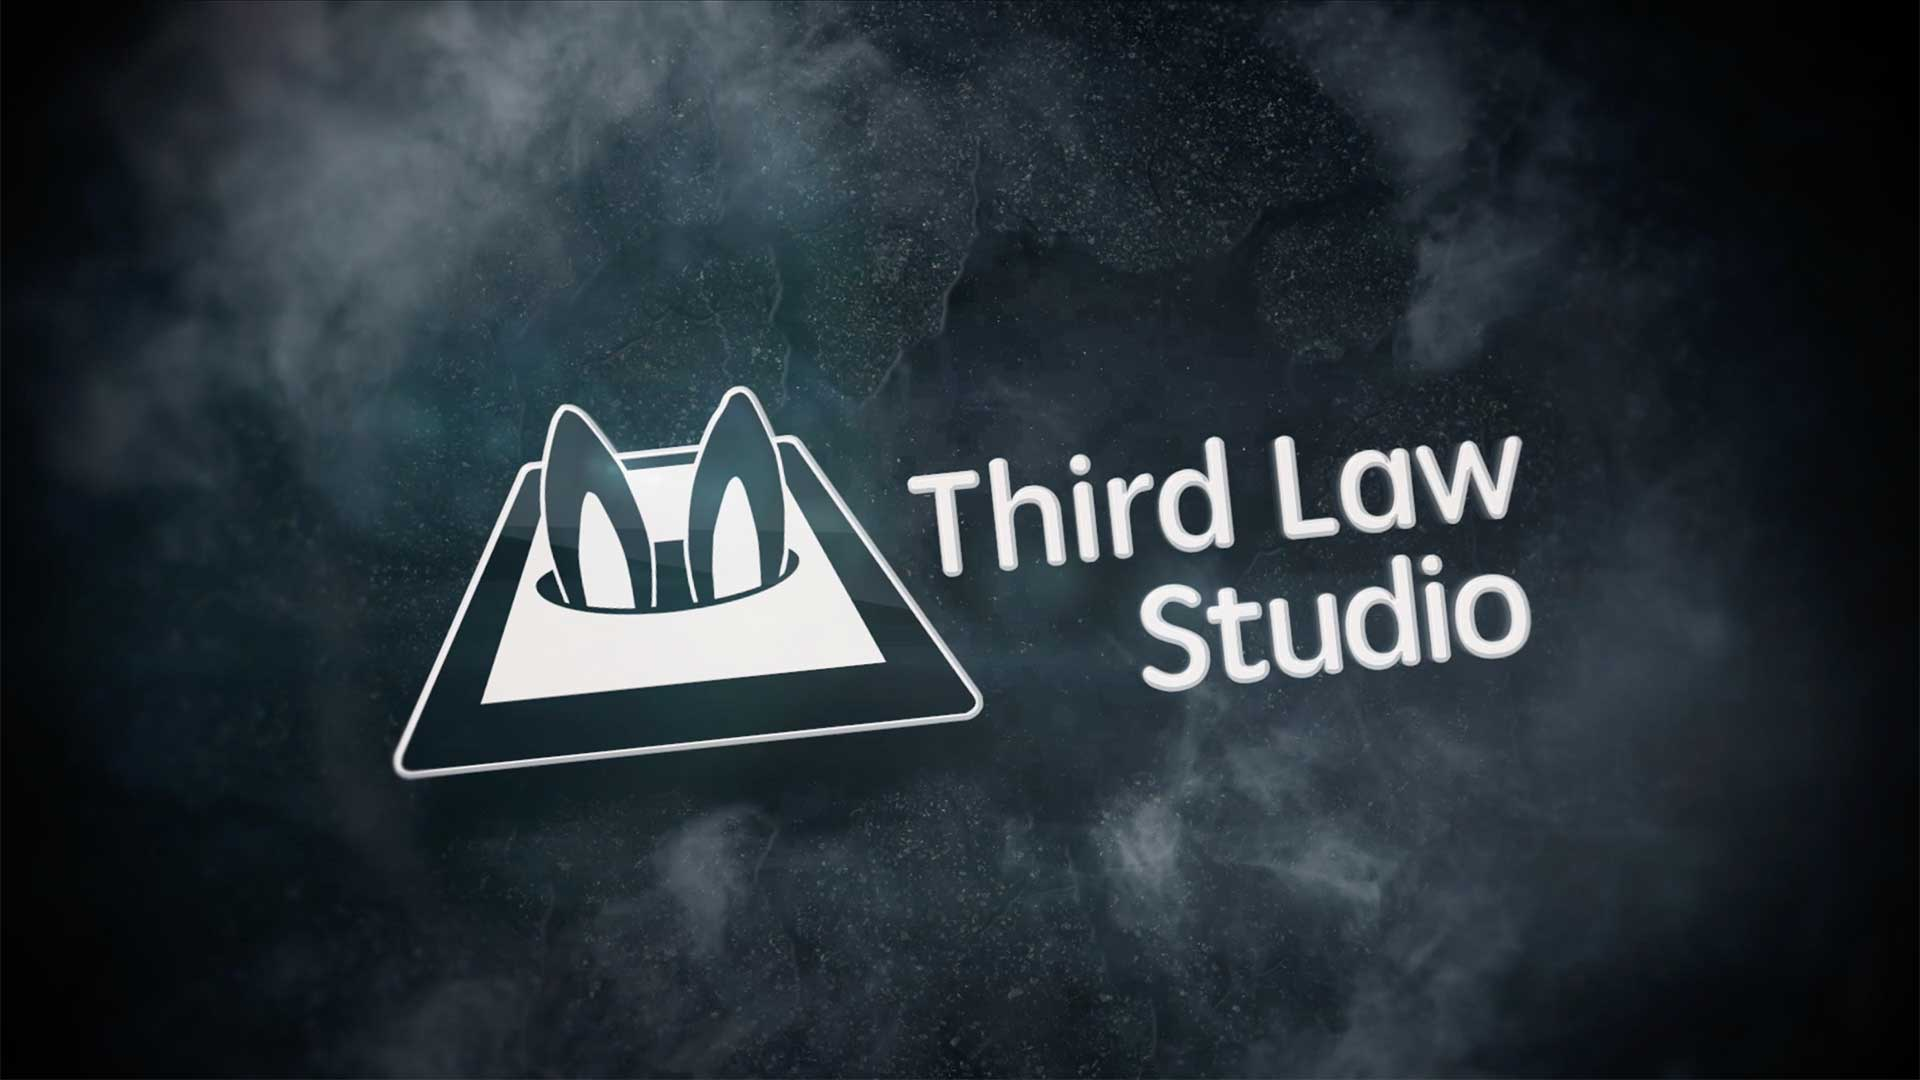 Third Law Studio